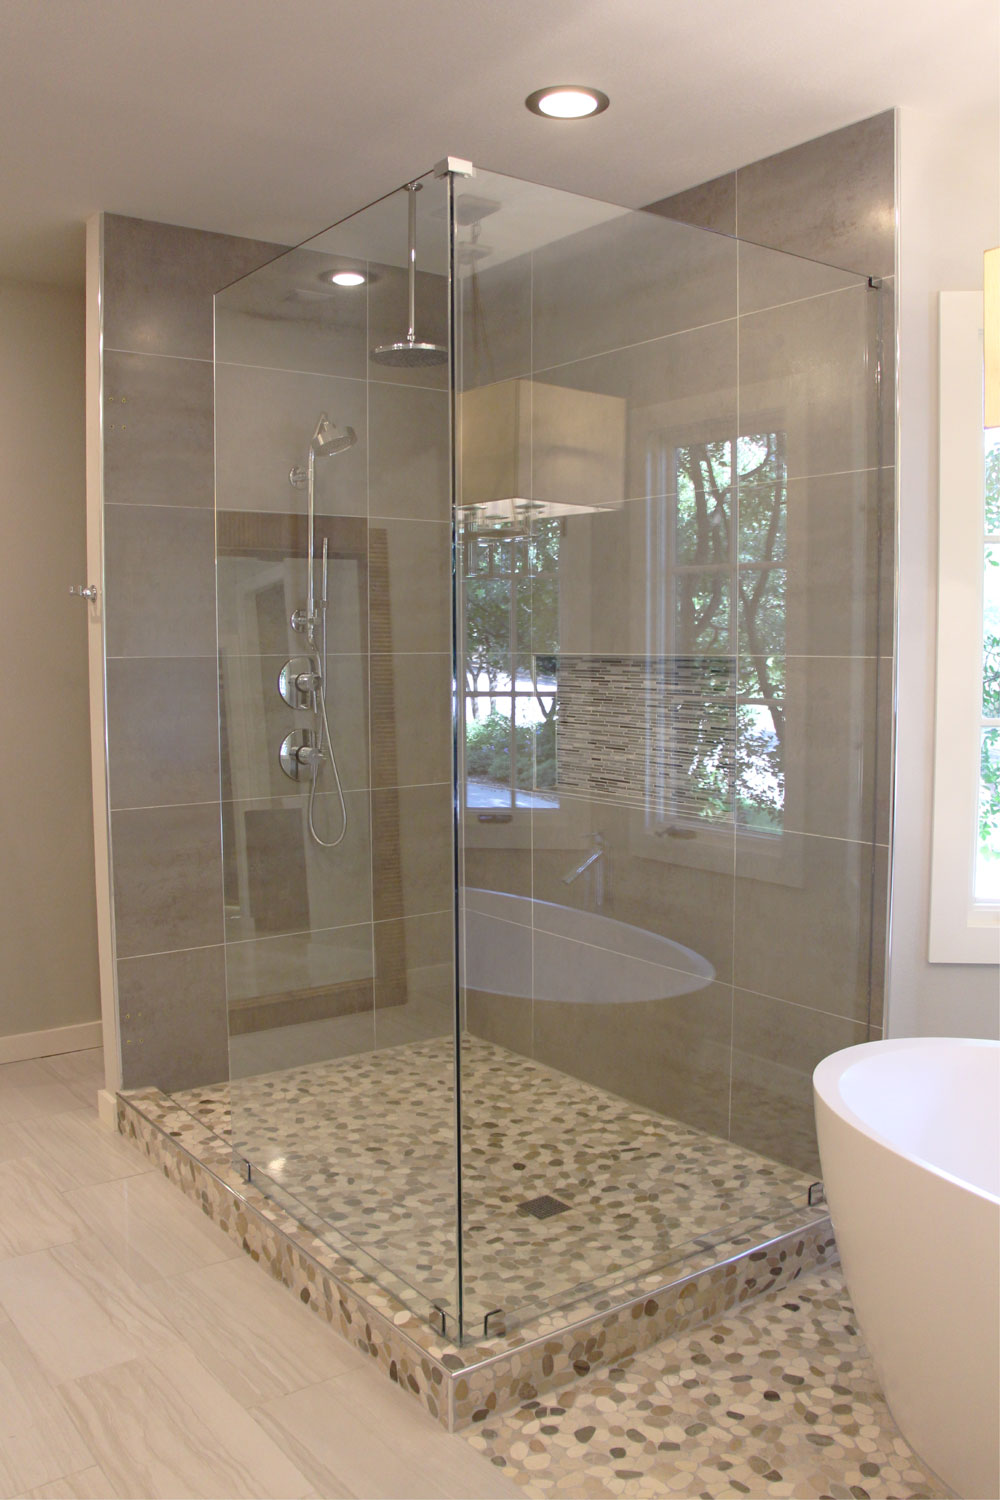 Liz-Light-Interiors-Bathroom-20.jpg